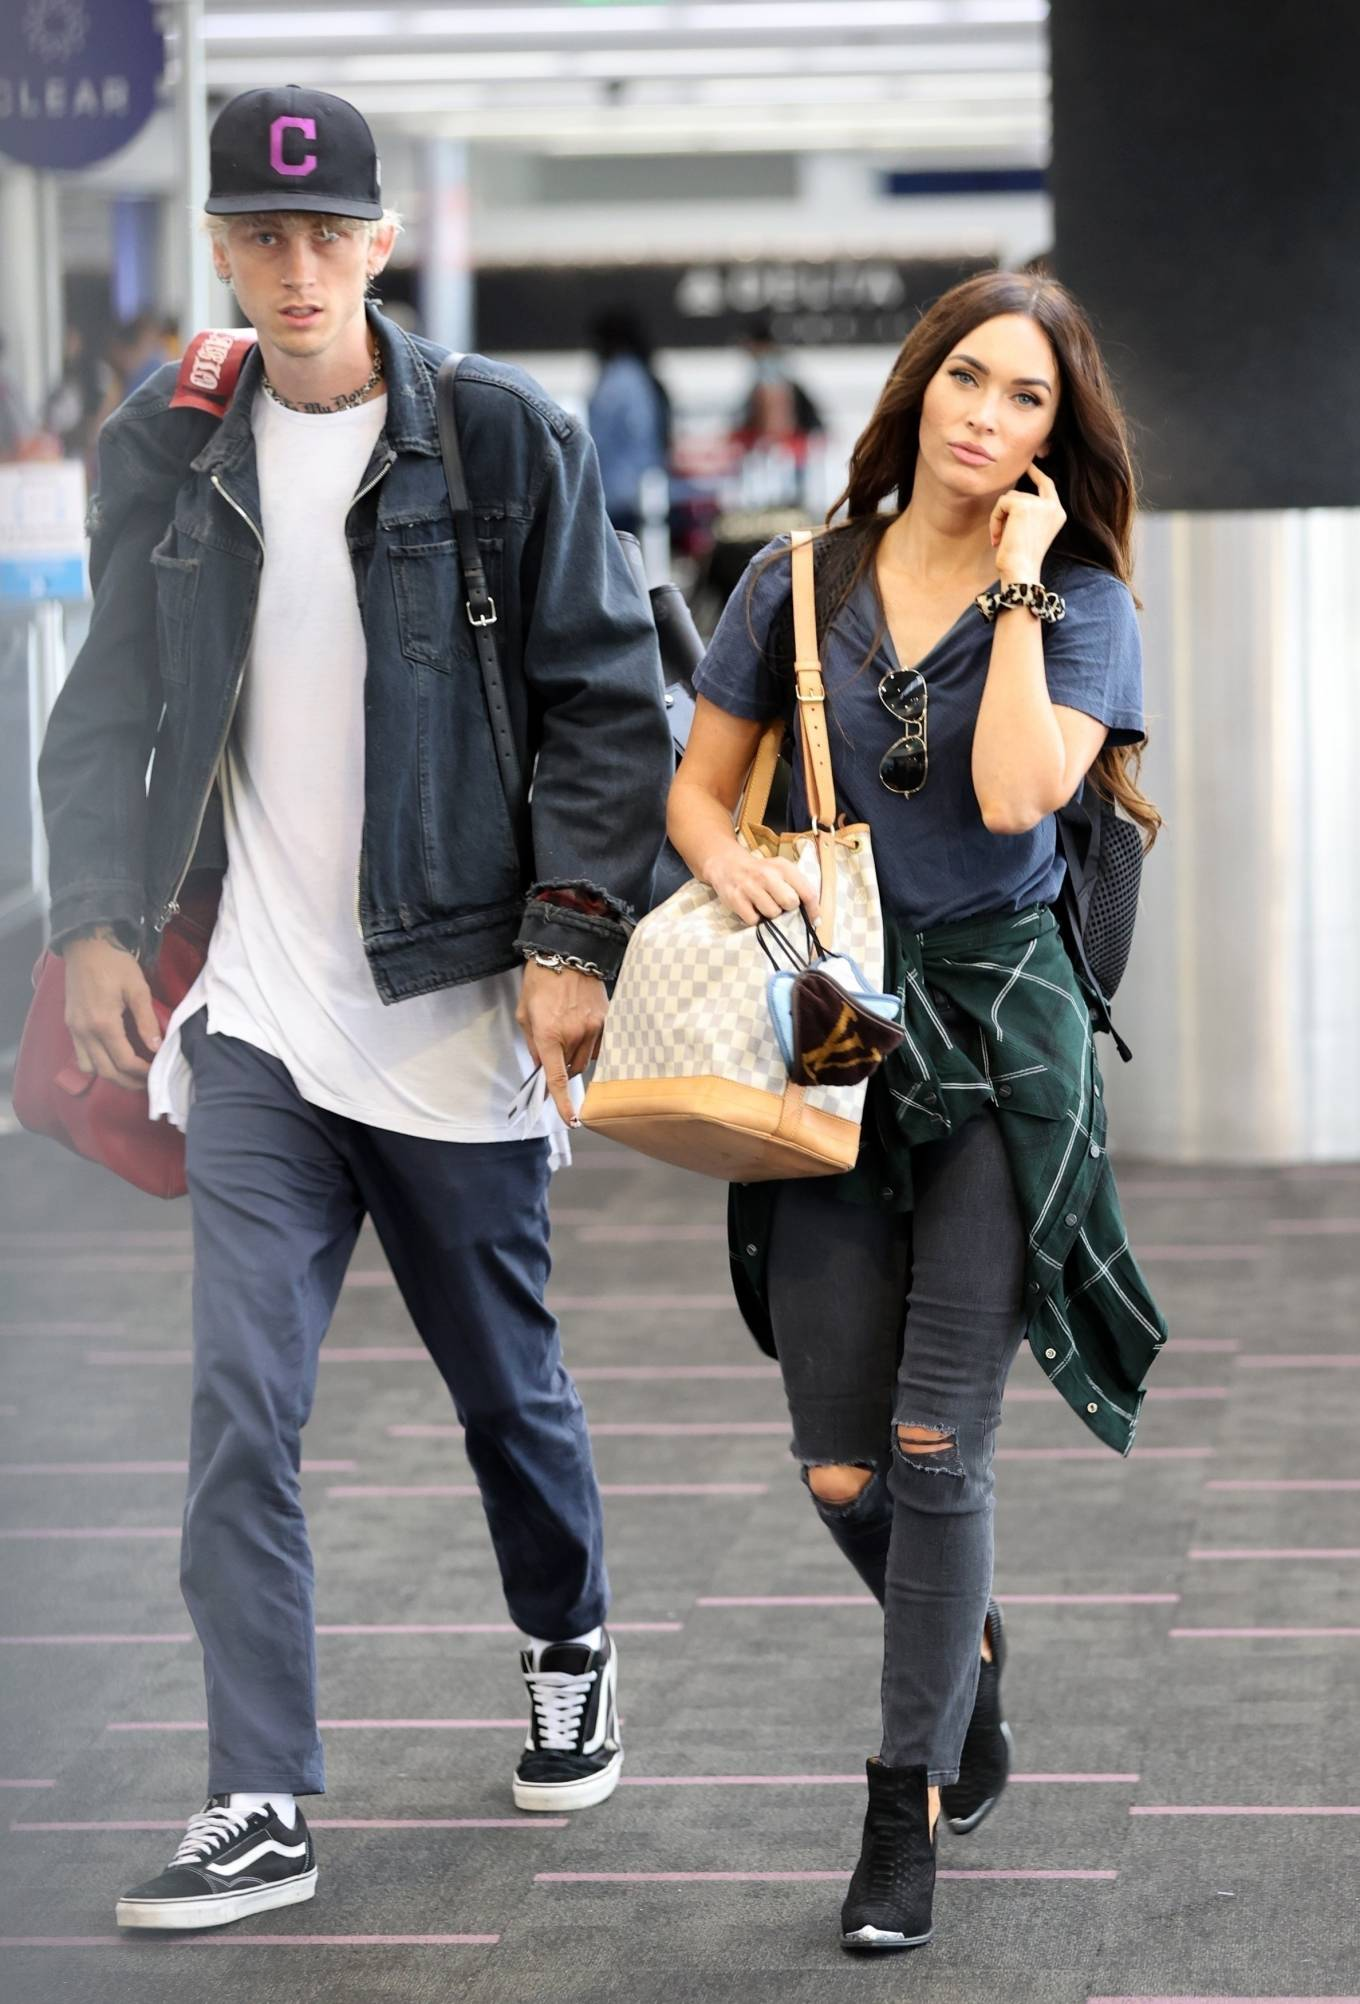 Megan Fox and Machine Gun Kelly - Arriving at LAX airport in Los Angeles